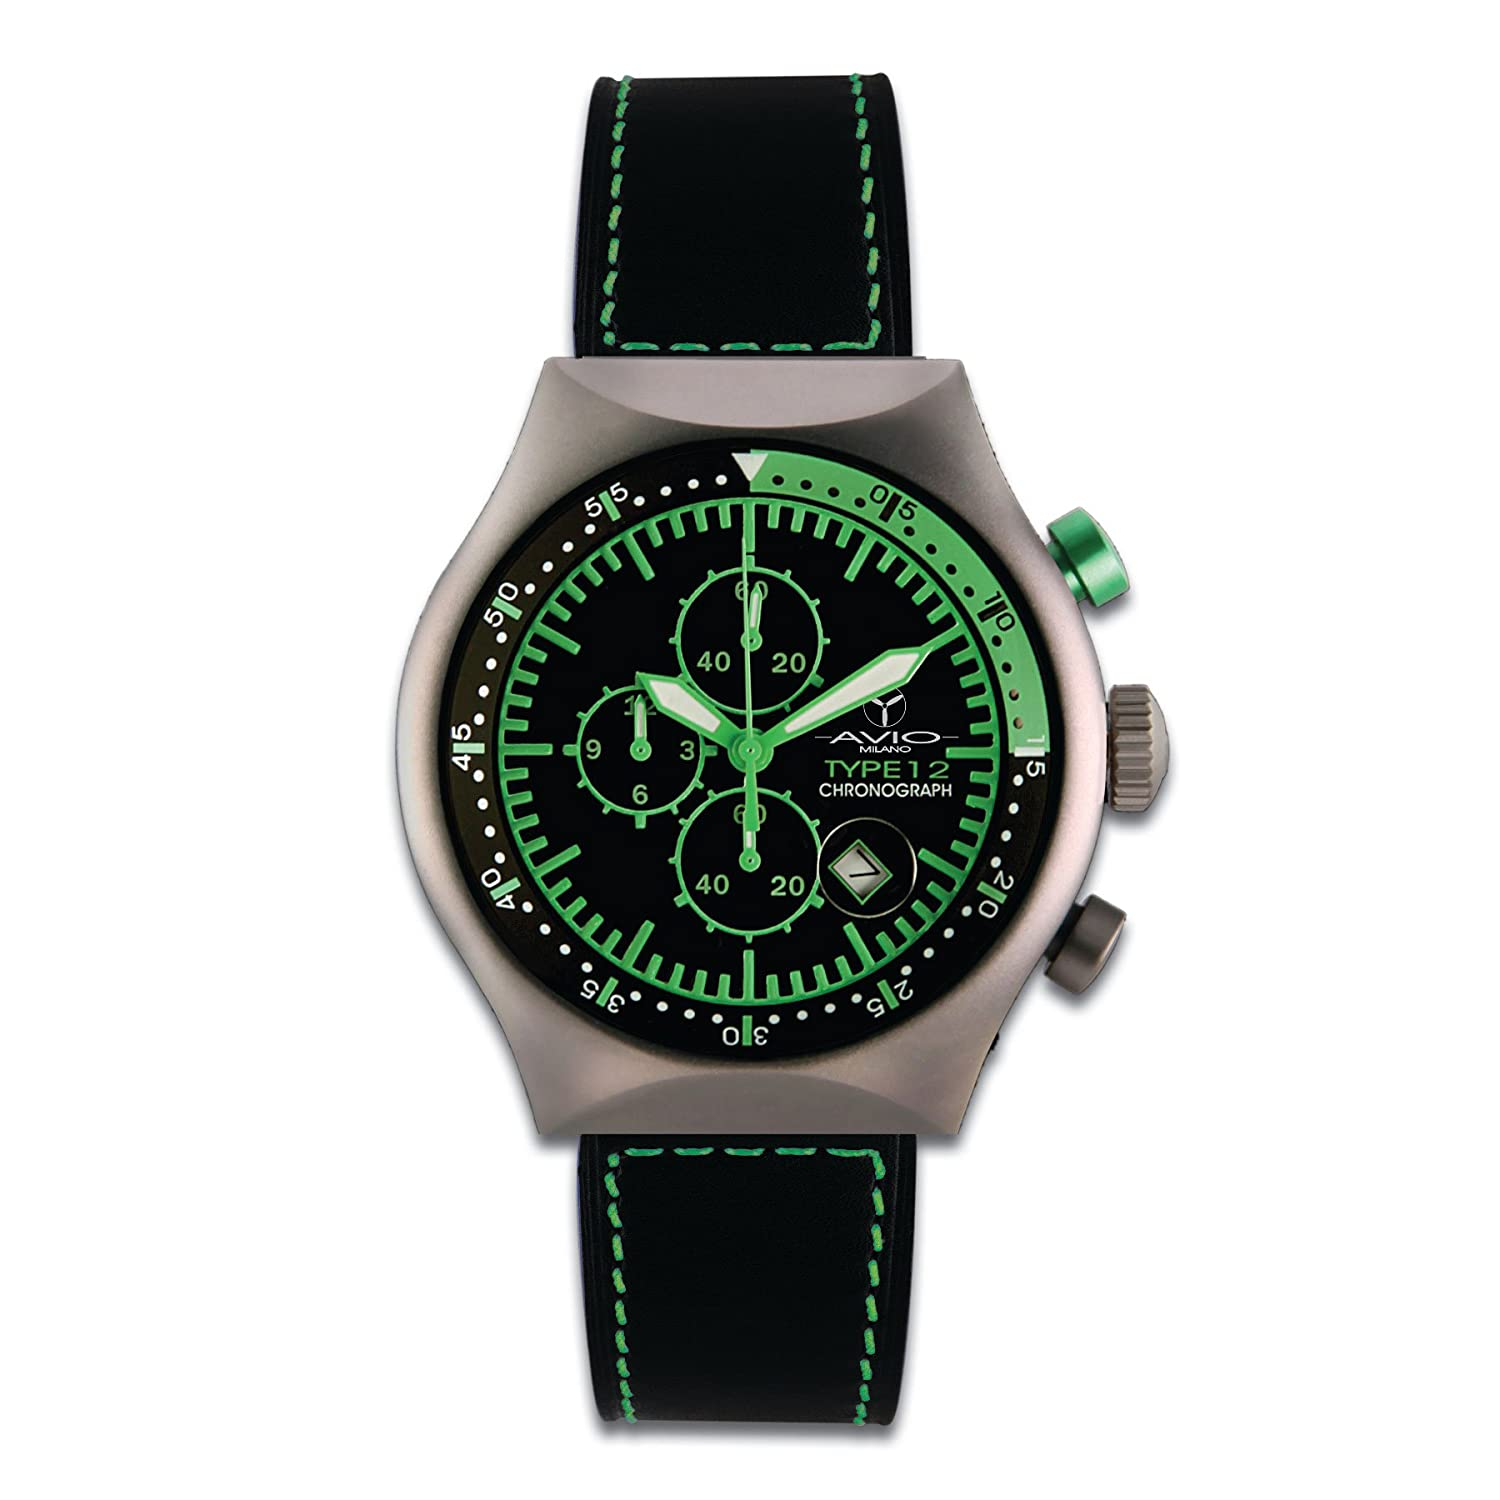 Avio Milano 45 MM TP GREEN Armbanduhr - 45 MM TP GREEN